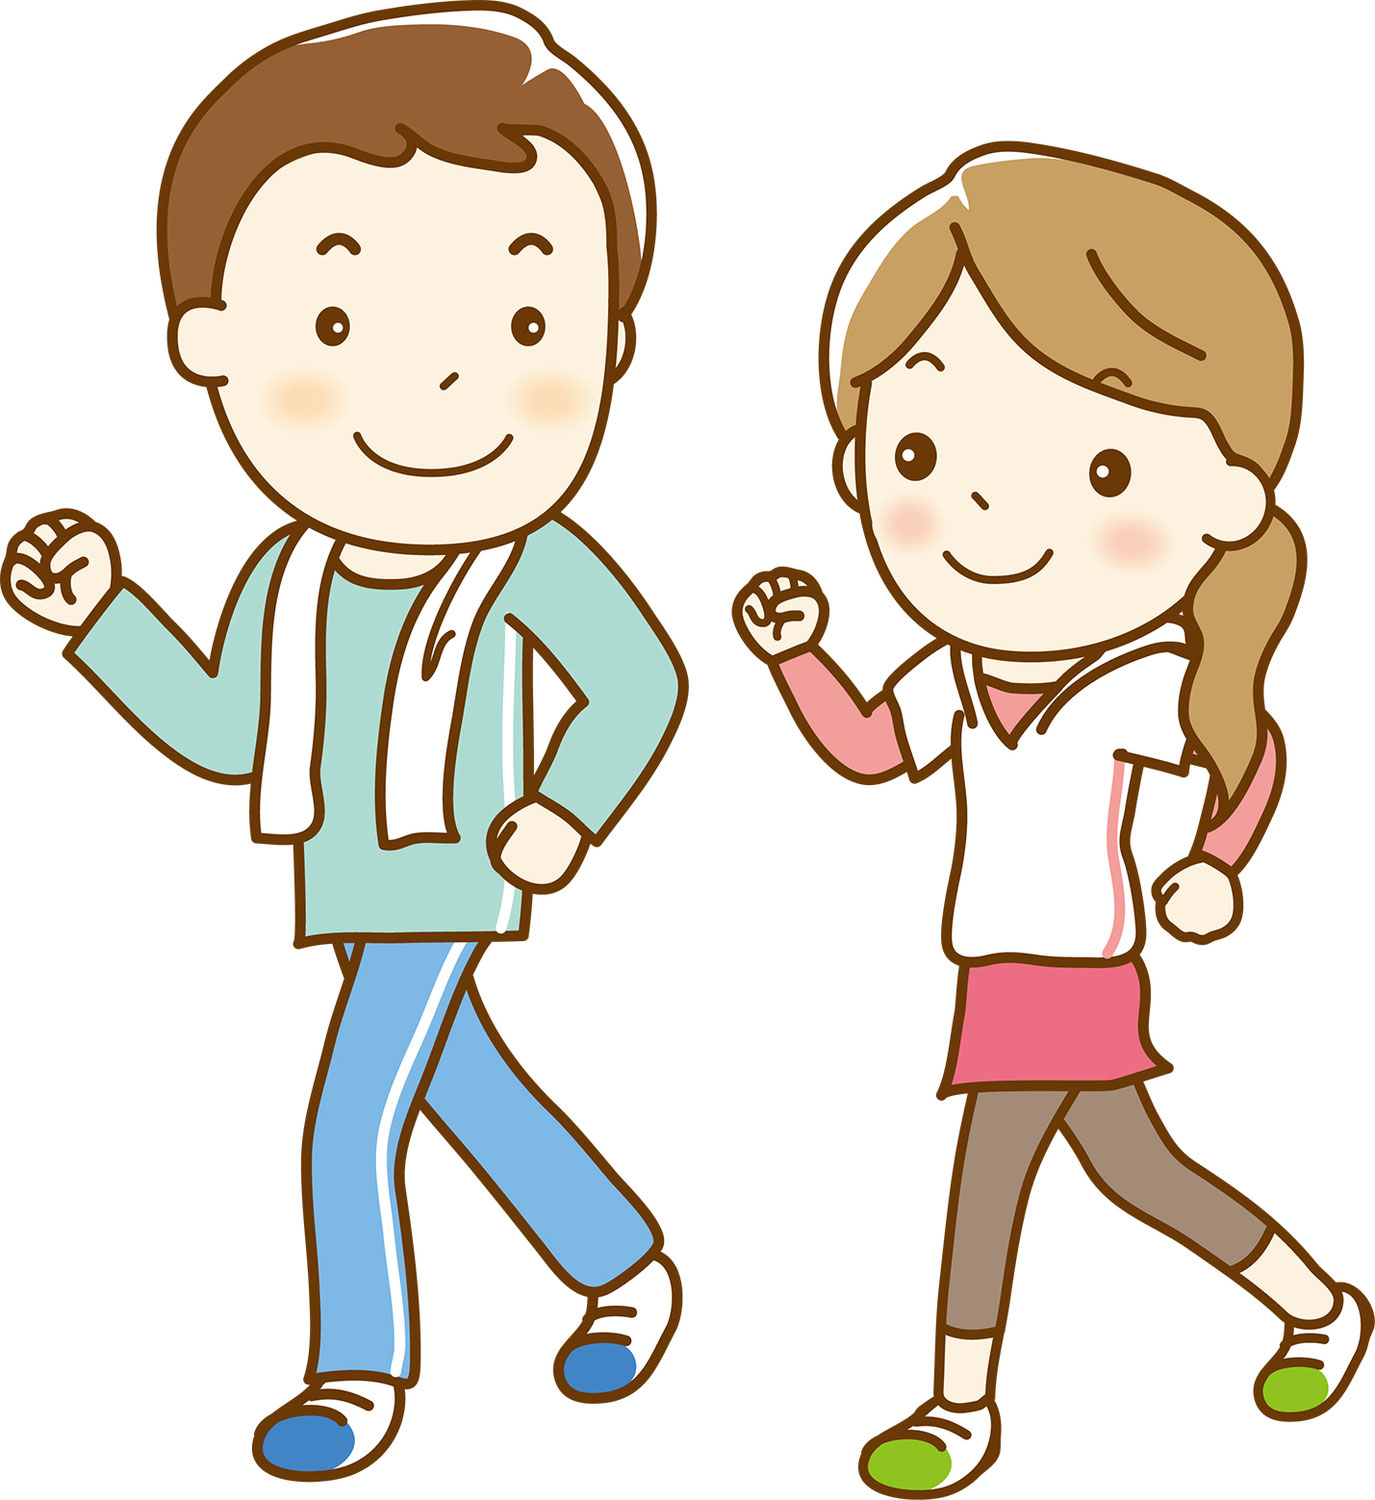 HappyNote is my partner who keeps walking toward the goal